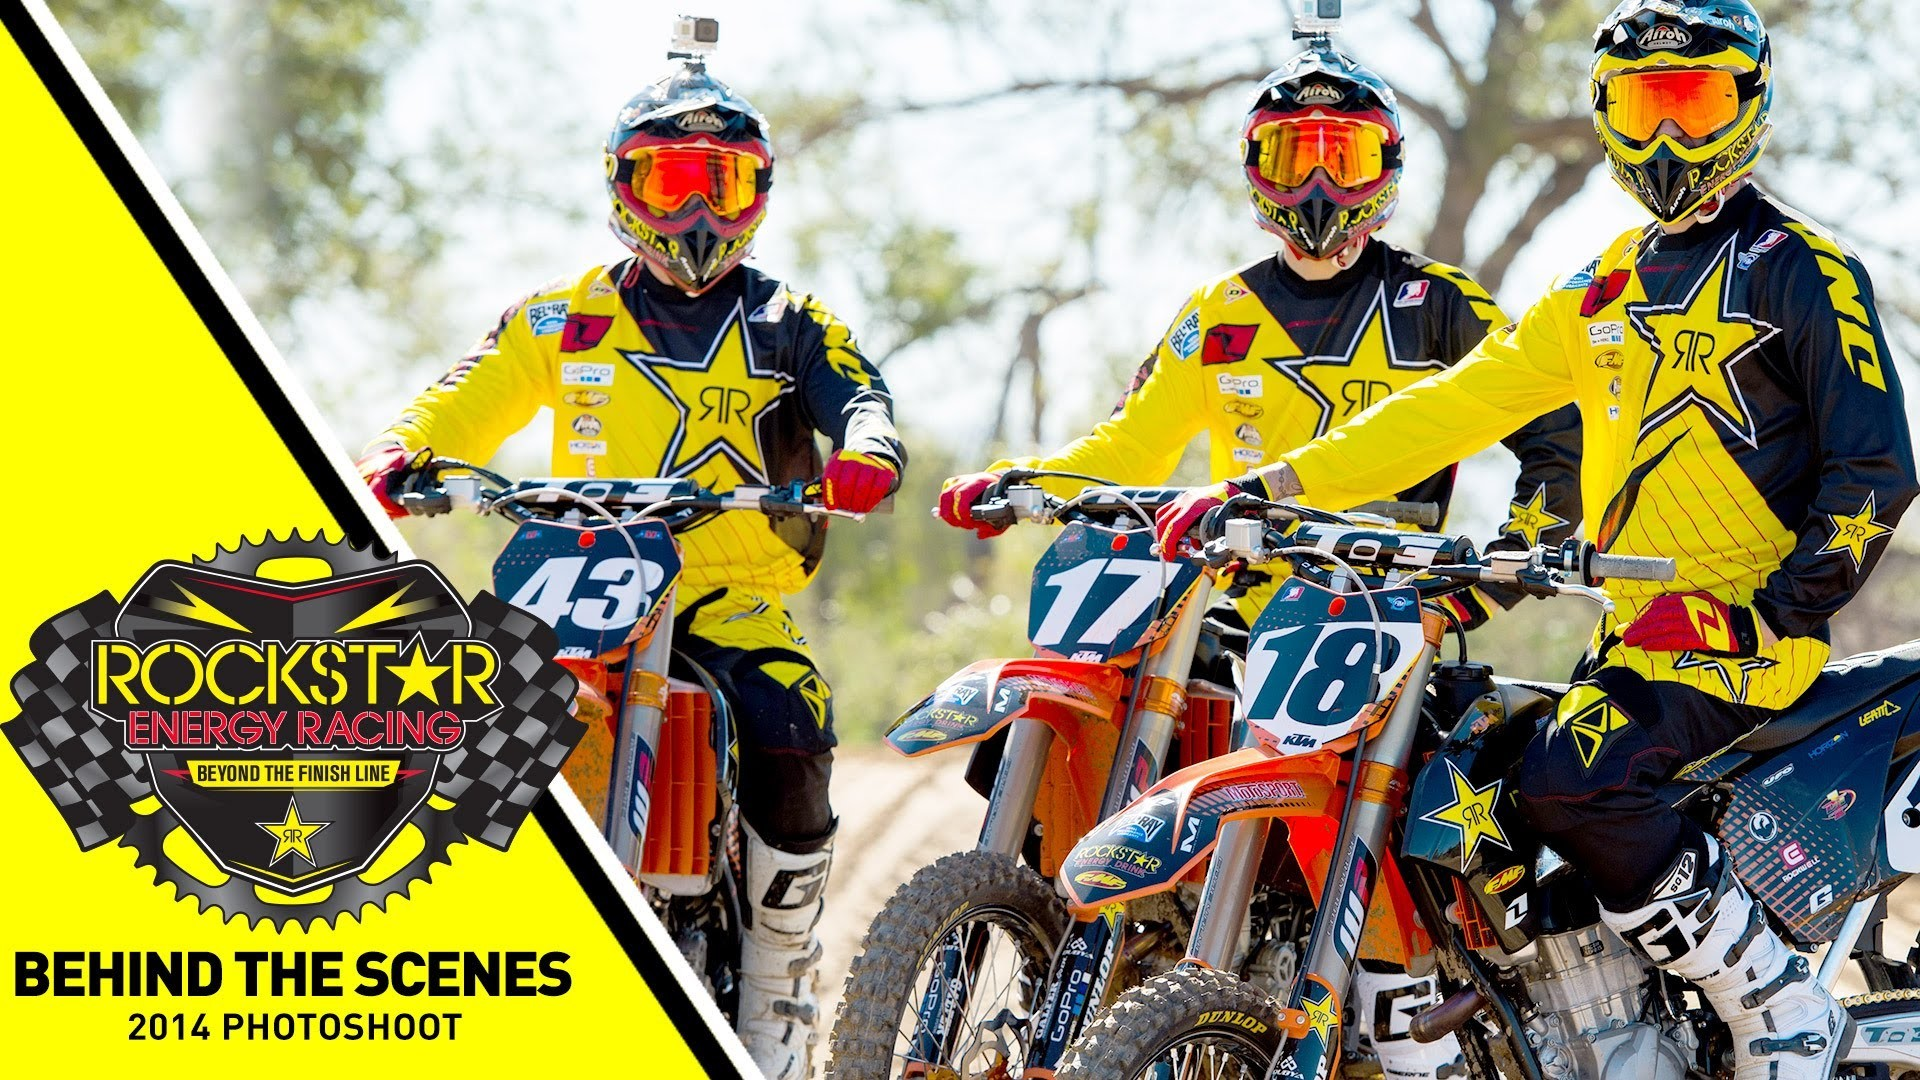 Res: 1920x1080, 2014 Rockstar Energy Racing Photo Shoot